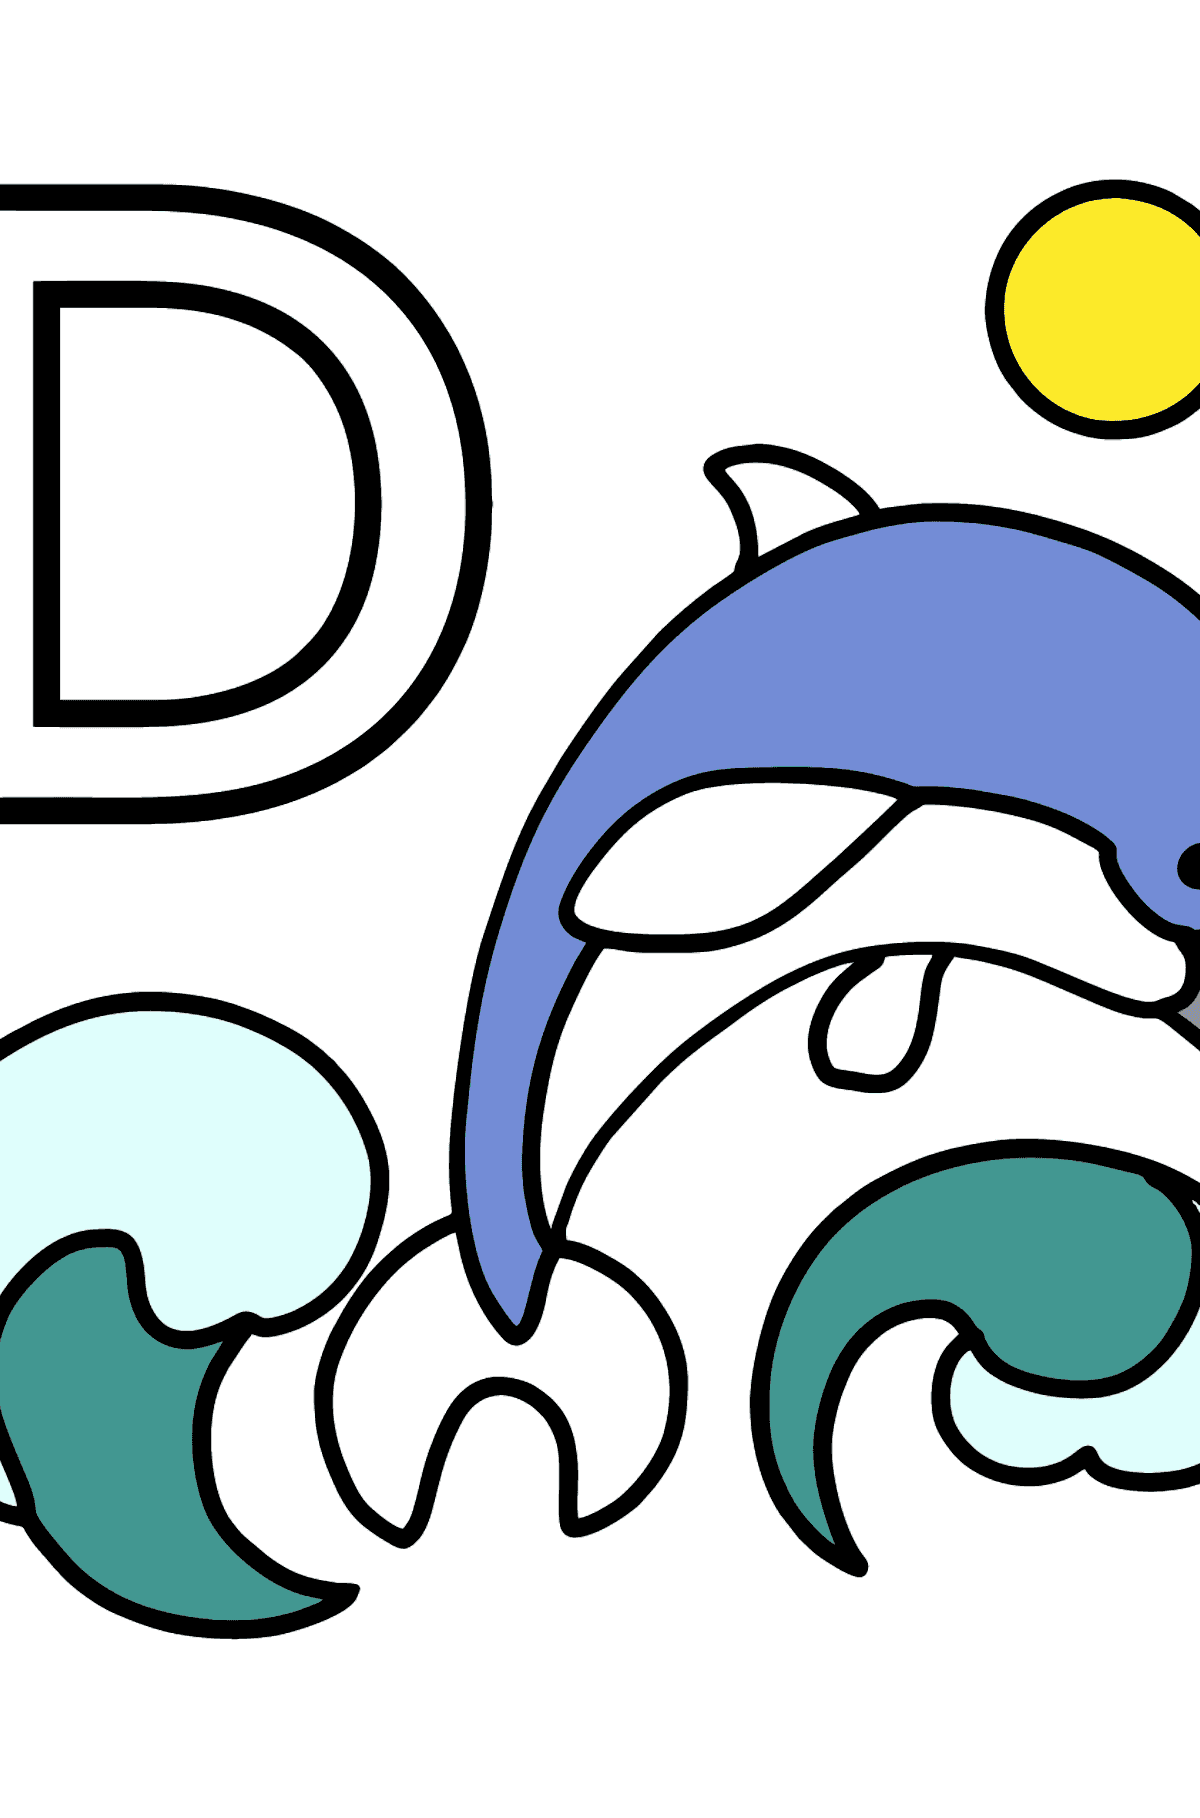 English Letter D coloring pages - DOLPHIN - Coloring Pages for Kids